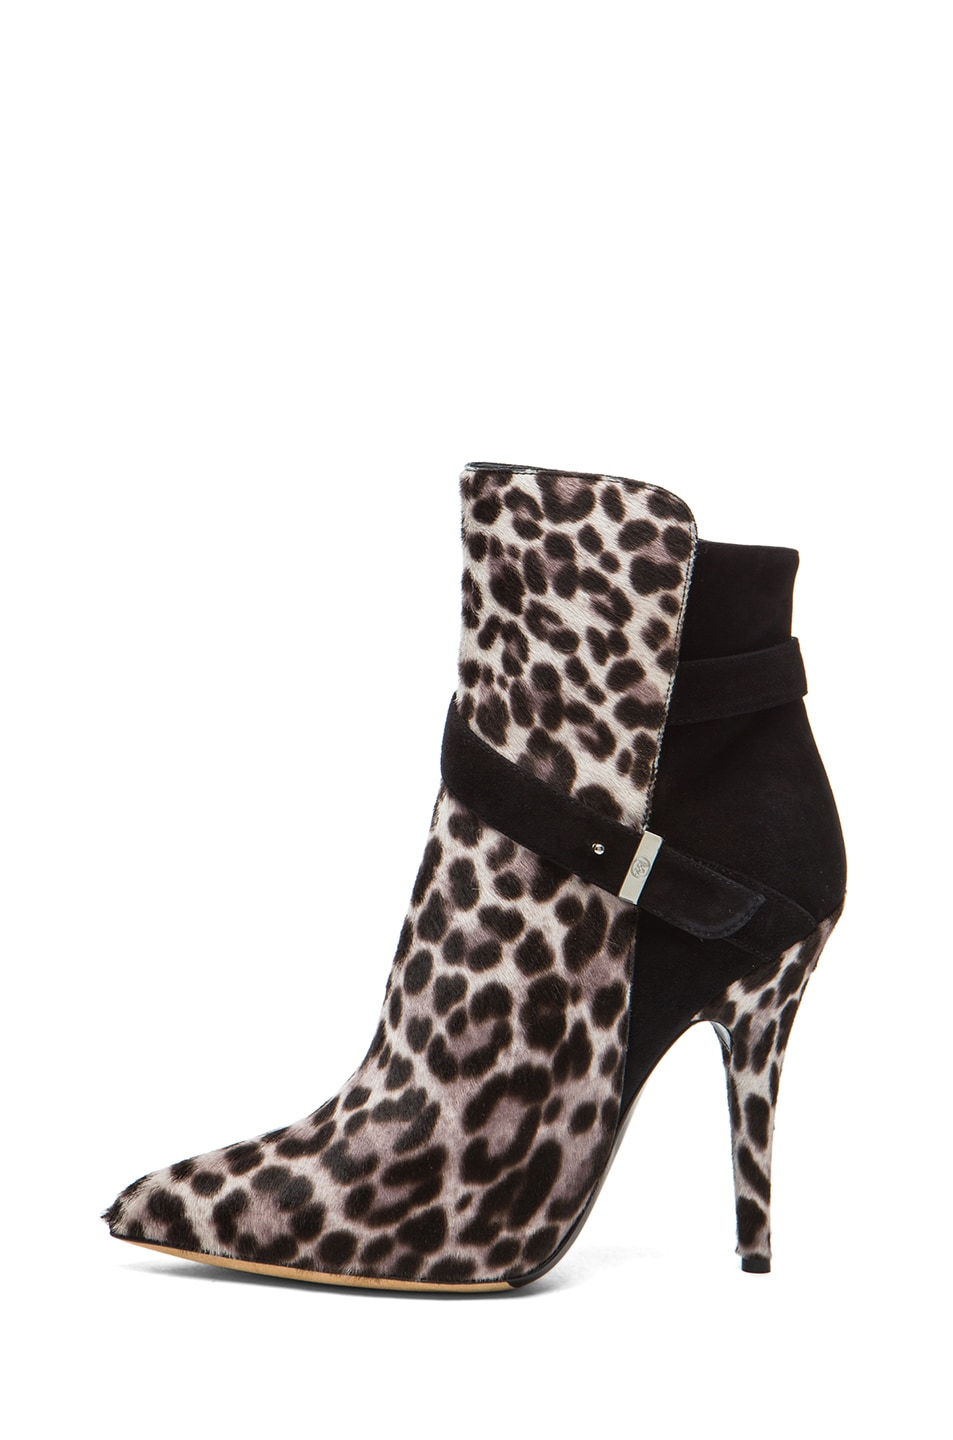 Image 1 of Tabitha Simmons Hunter Calf Hair Booties in Grey Leopard & Black